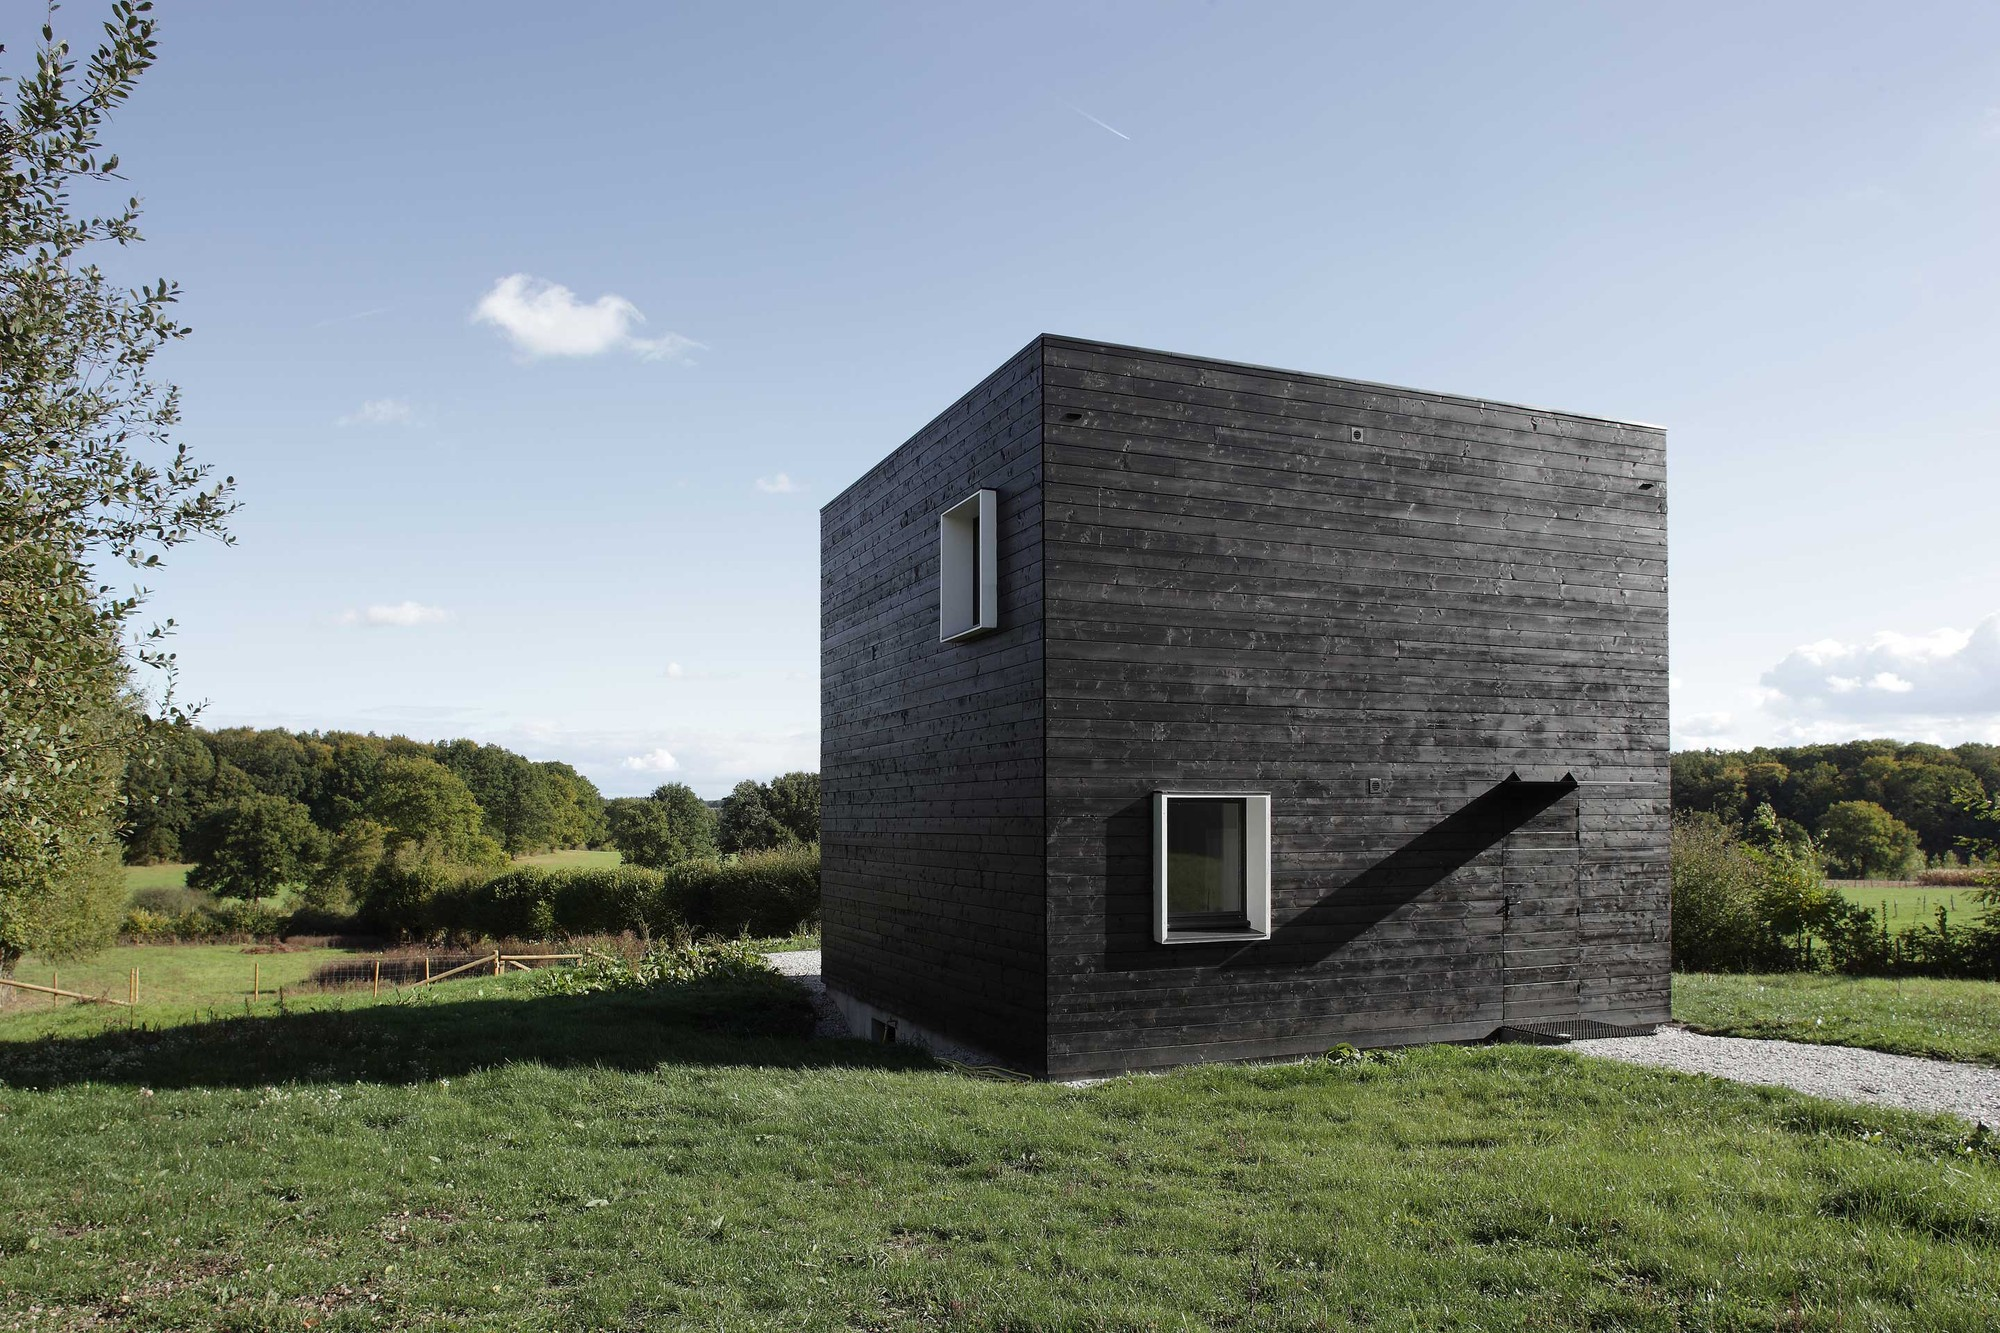 House In Normandy / Beckmann-N'thepe Architectes, Courtesy of Beckmann-N'thepe Architectes